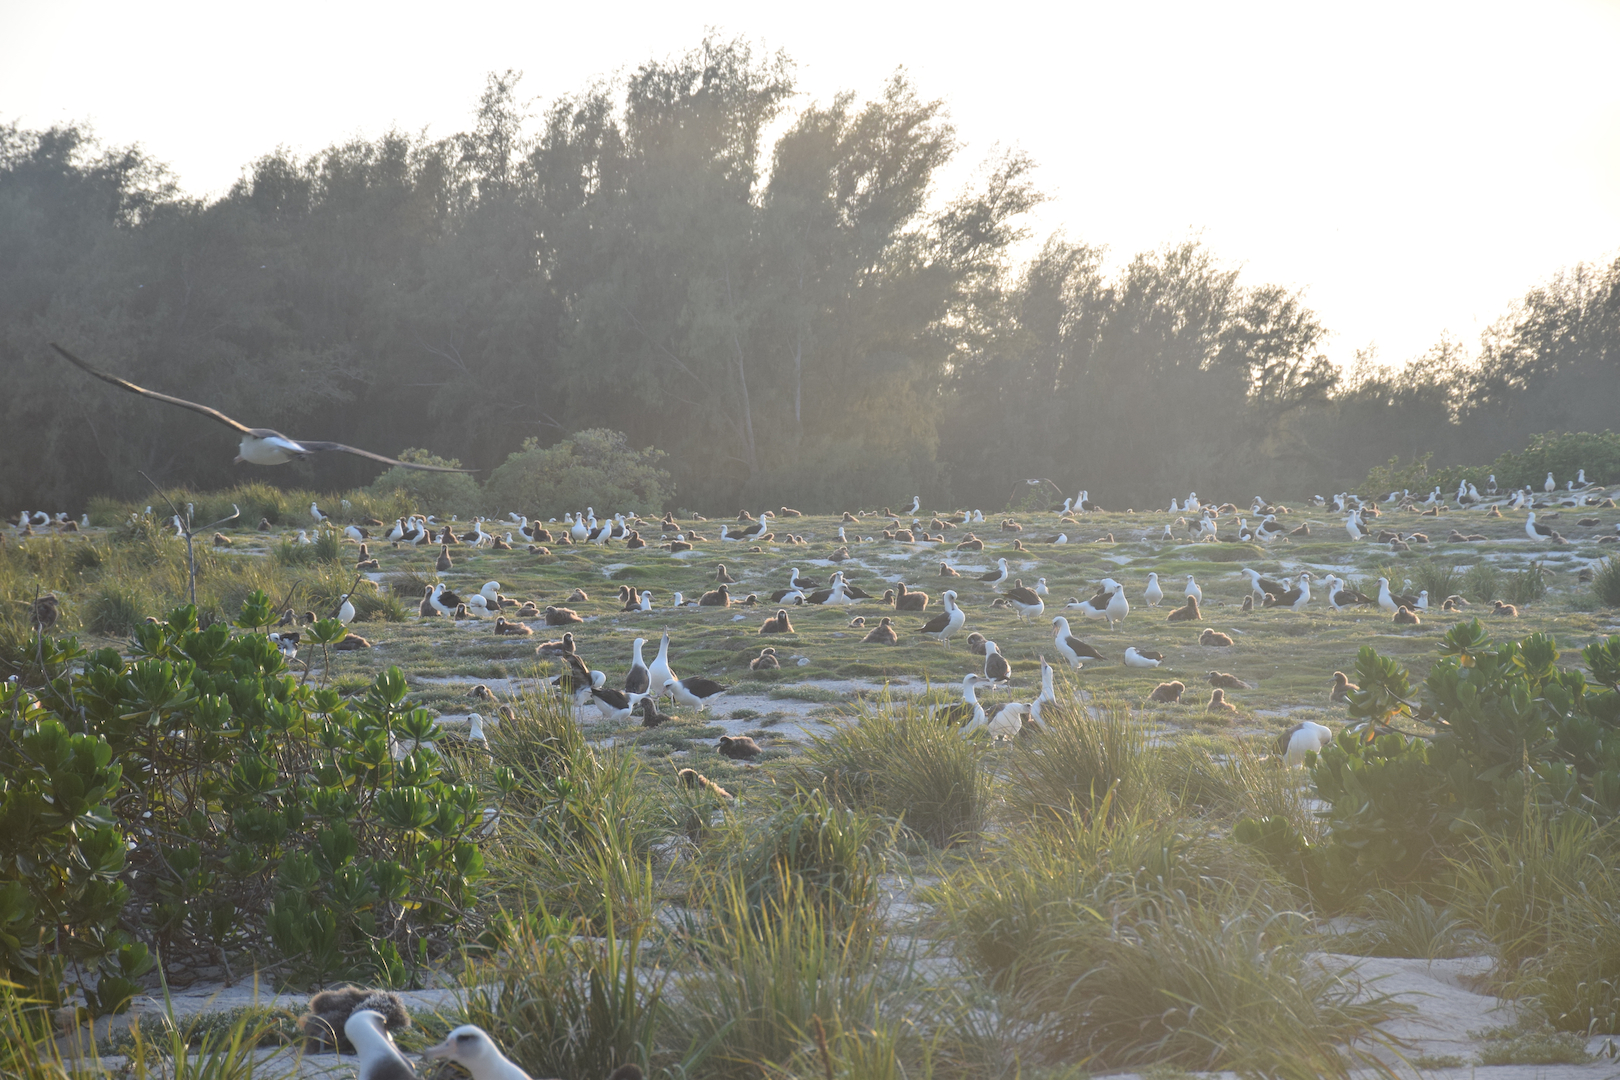 Midway, Atoll, Island, Albatross, Chick, Golden, Magic, Hour, Sunset, backlit